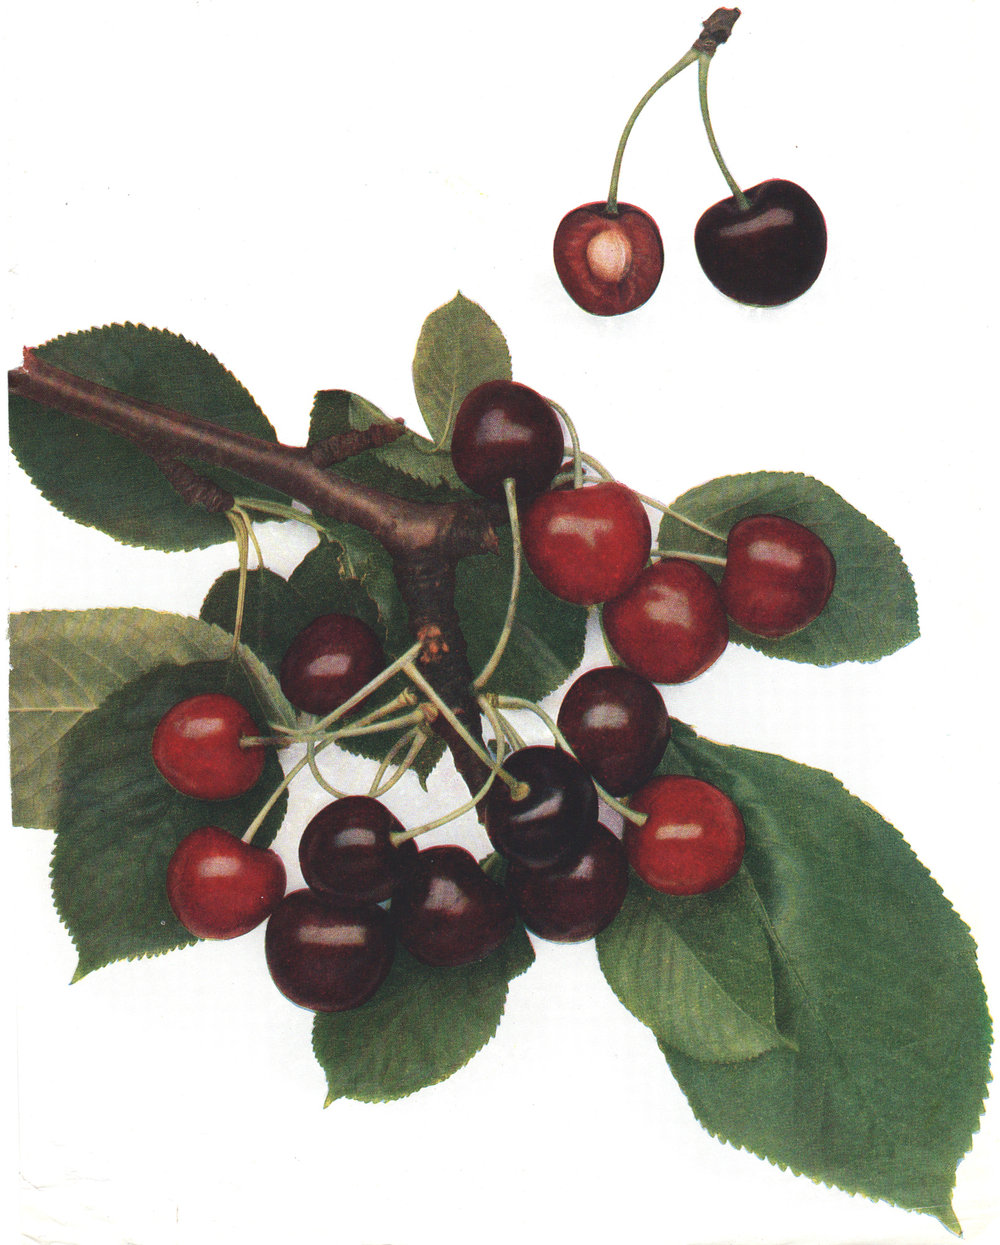 Grubb, Norman H. – The Cherries and Plums of England